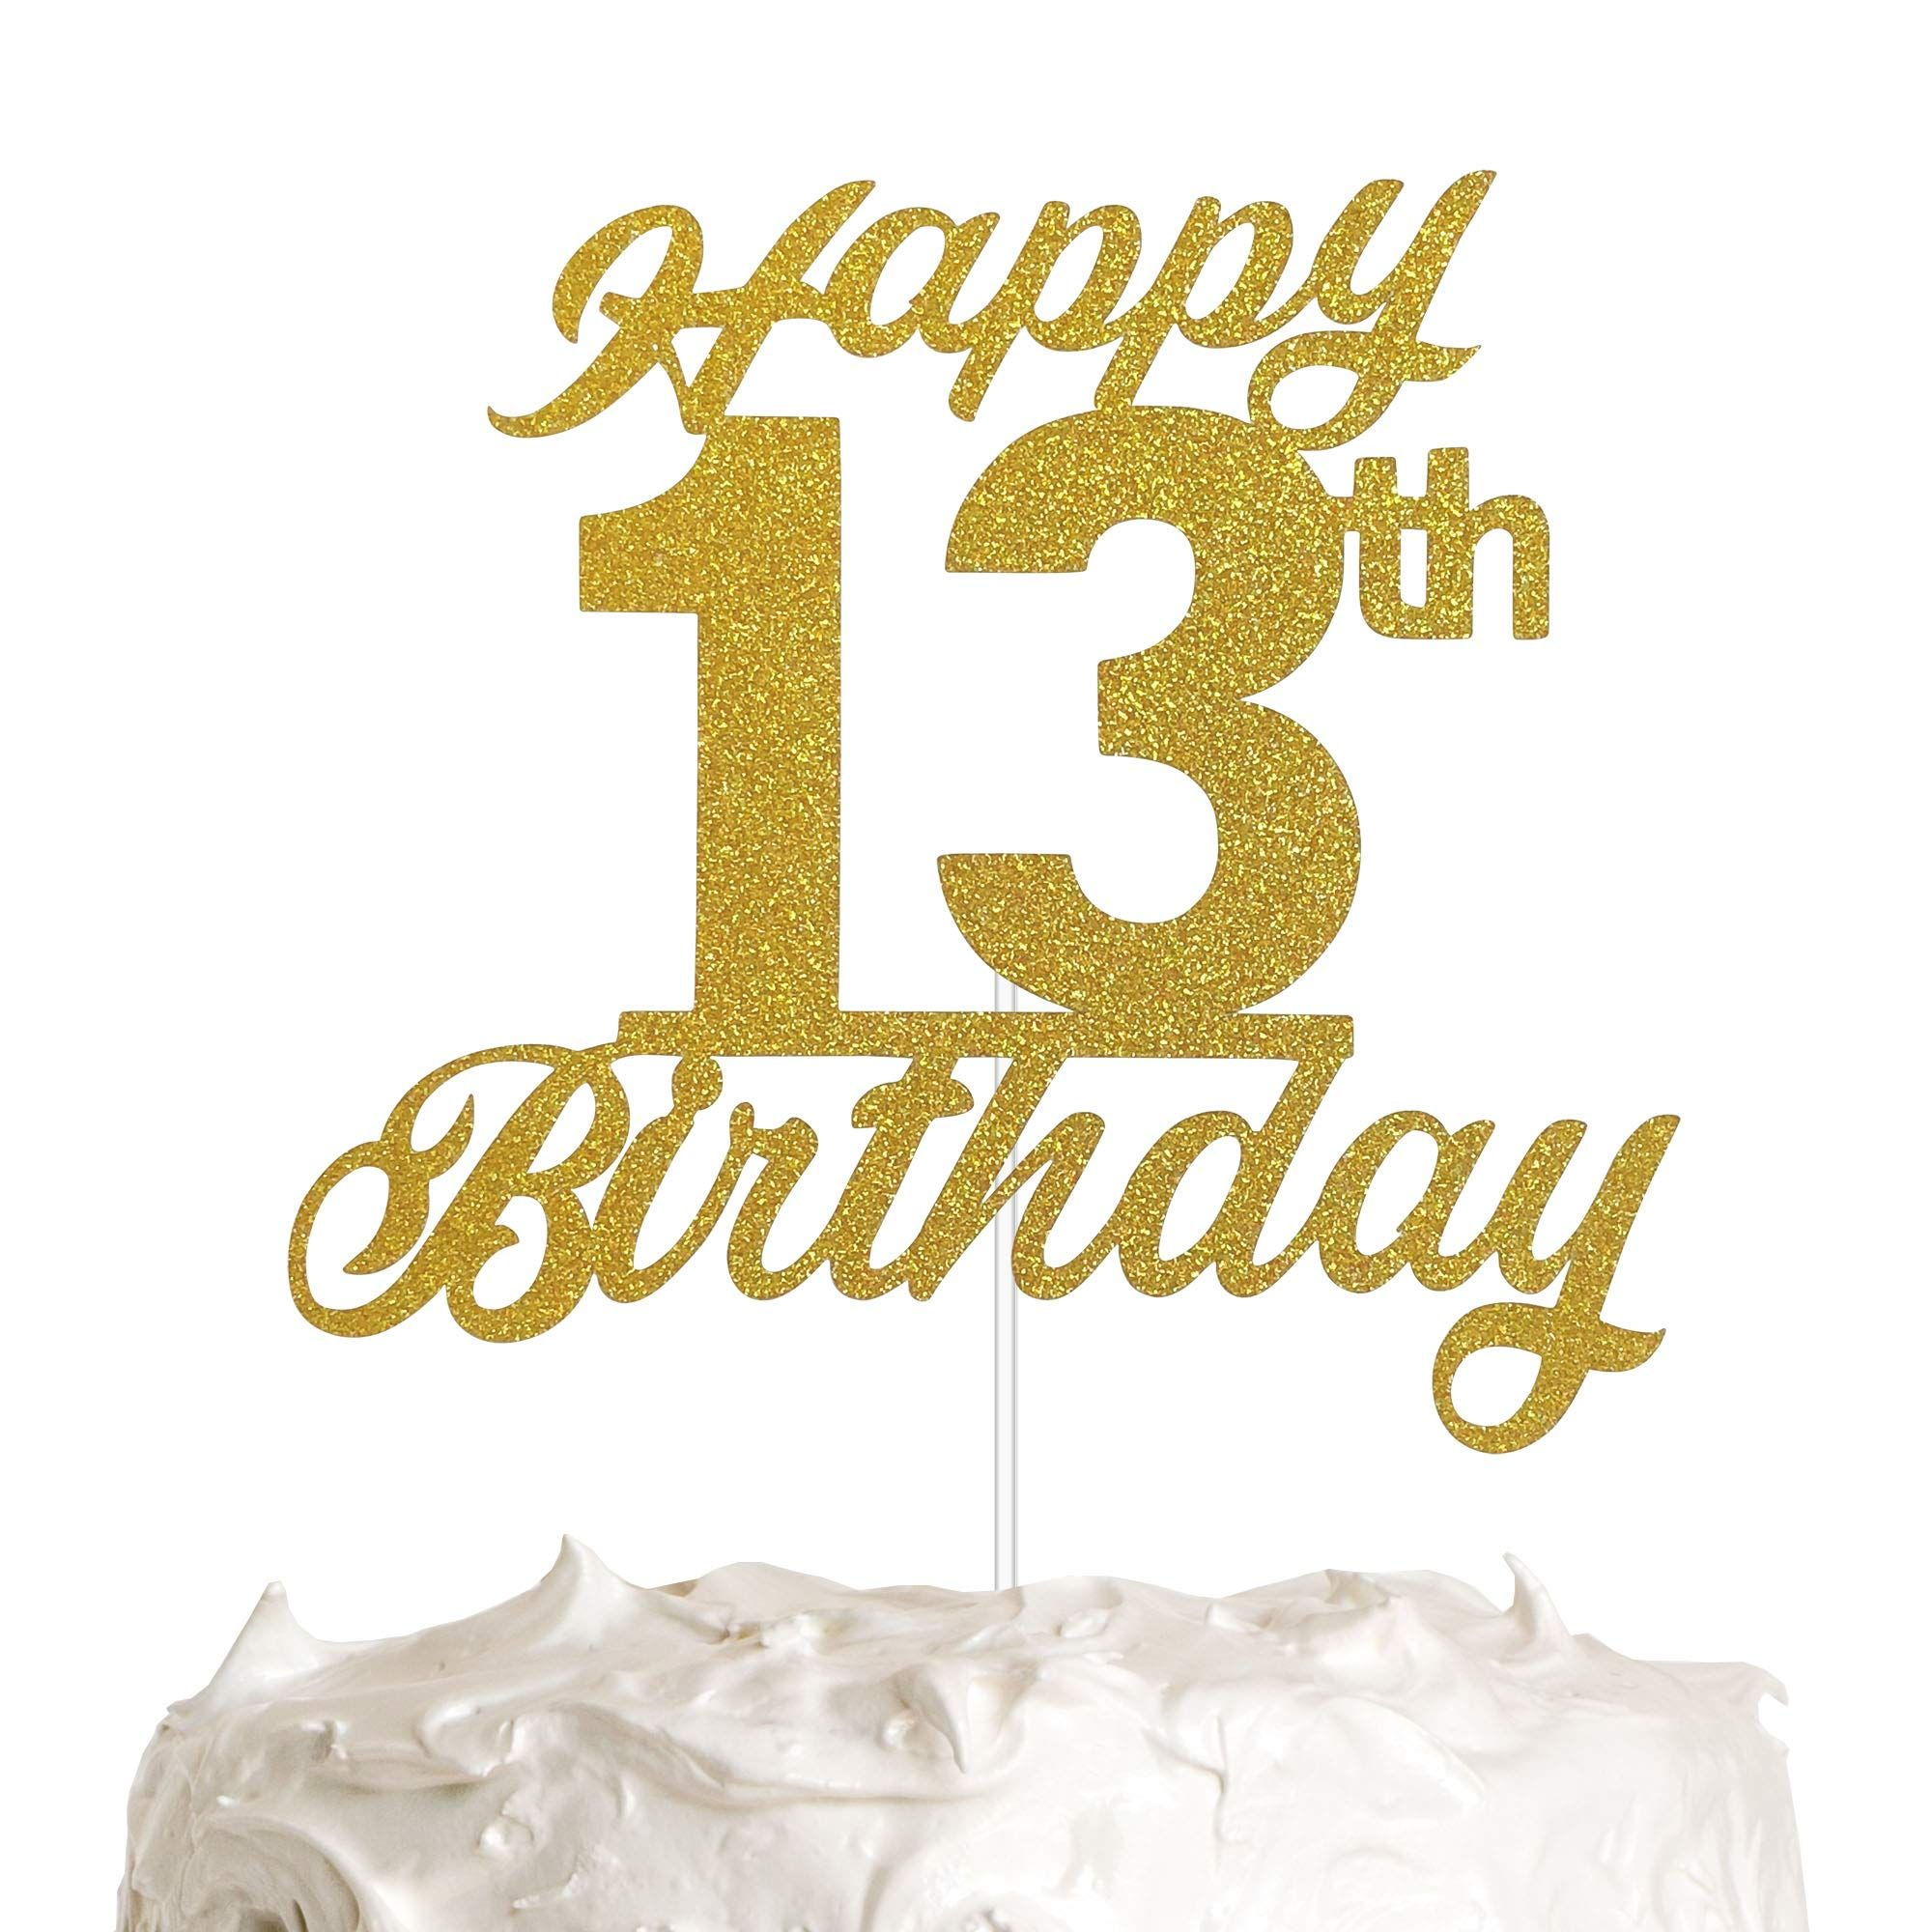 13th Birthday Cake Topper 13th Happy Birthday Party Decoration With Premium Gold Glitter Happy Birthday Party Decorations Happy 13th Birthday 13 Birthday Cake